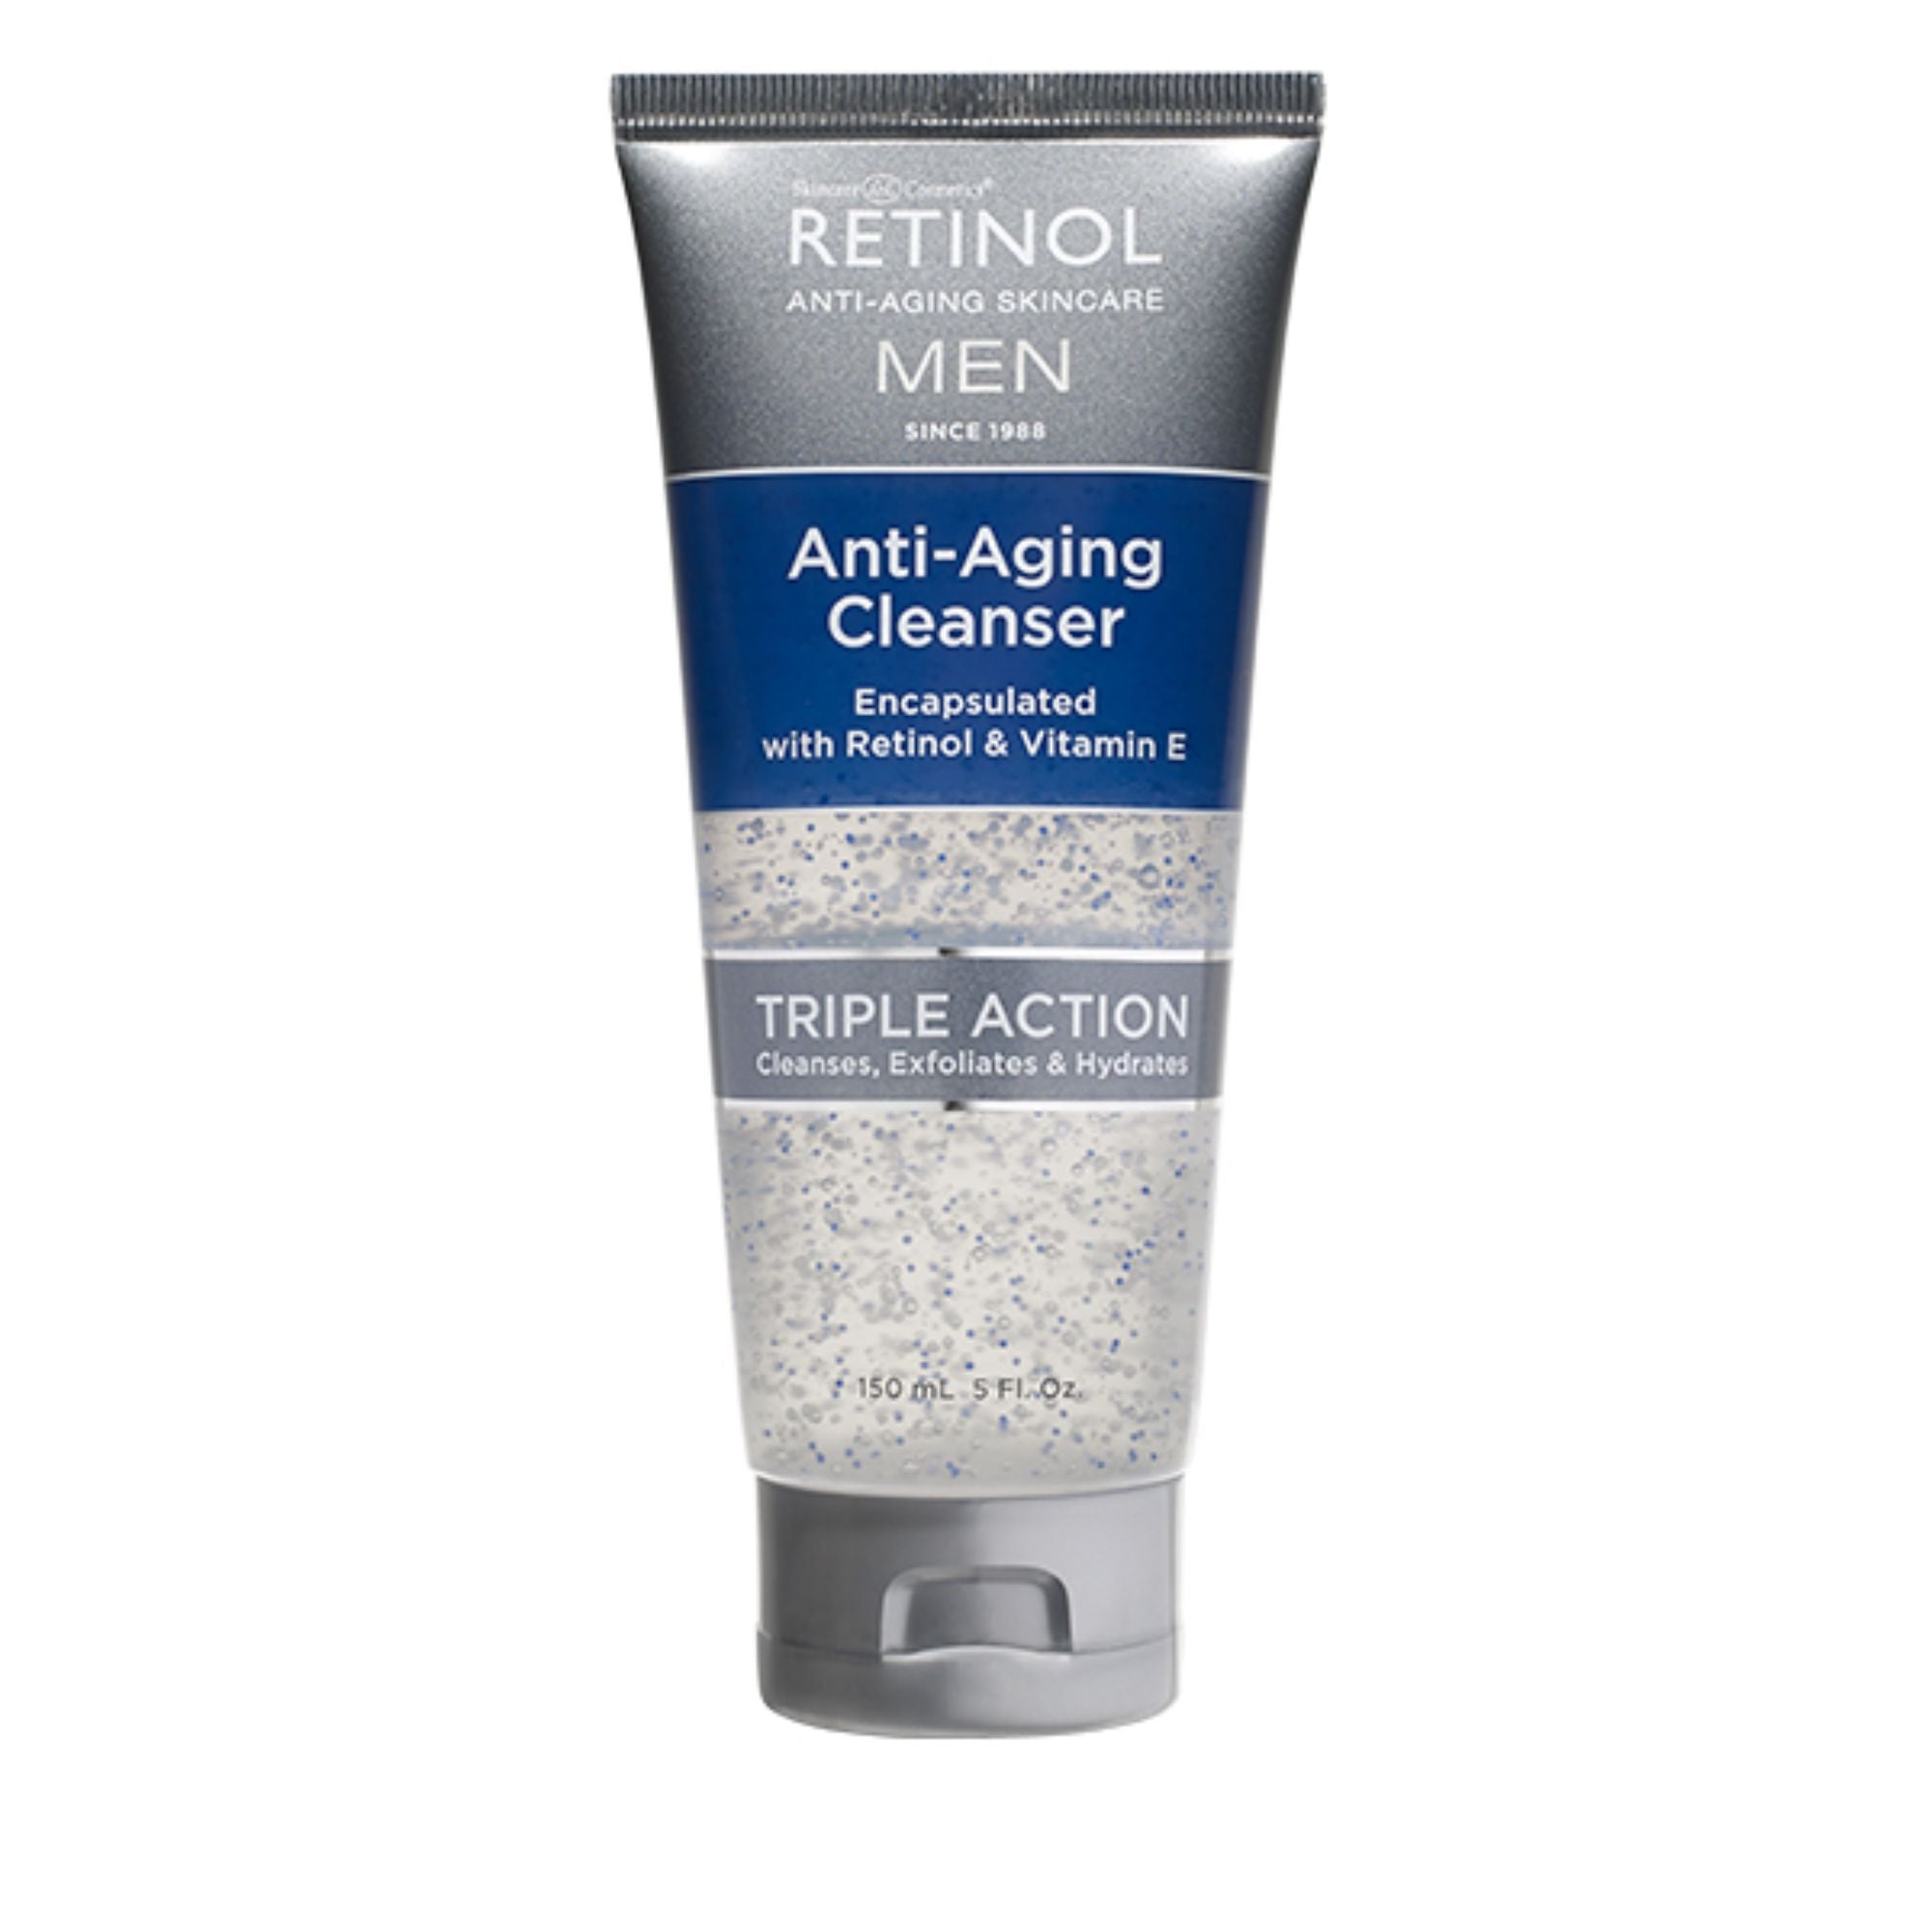 Men's Anti-Aging Cleanser